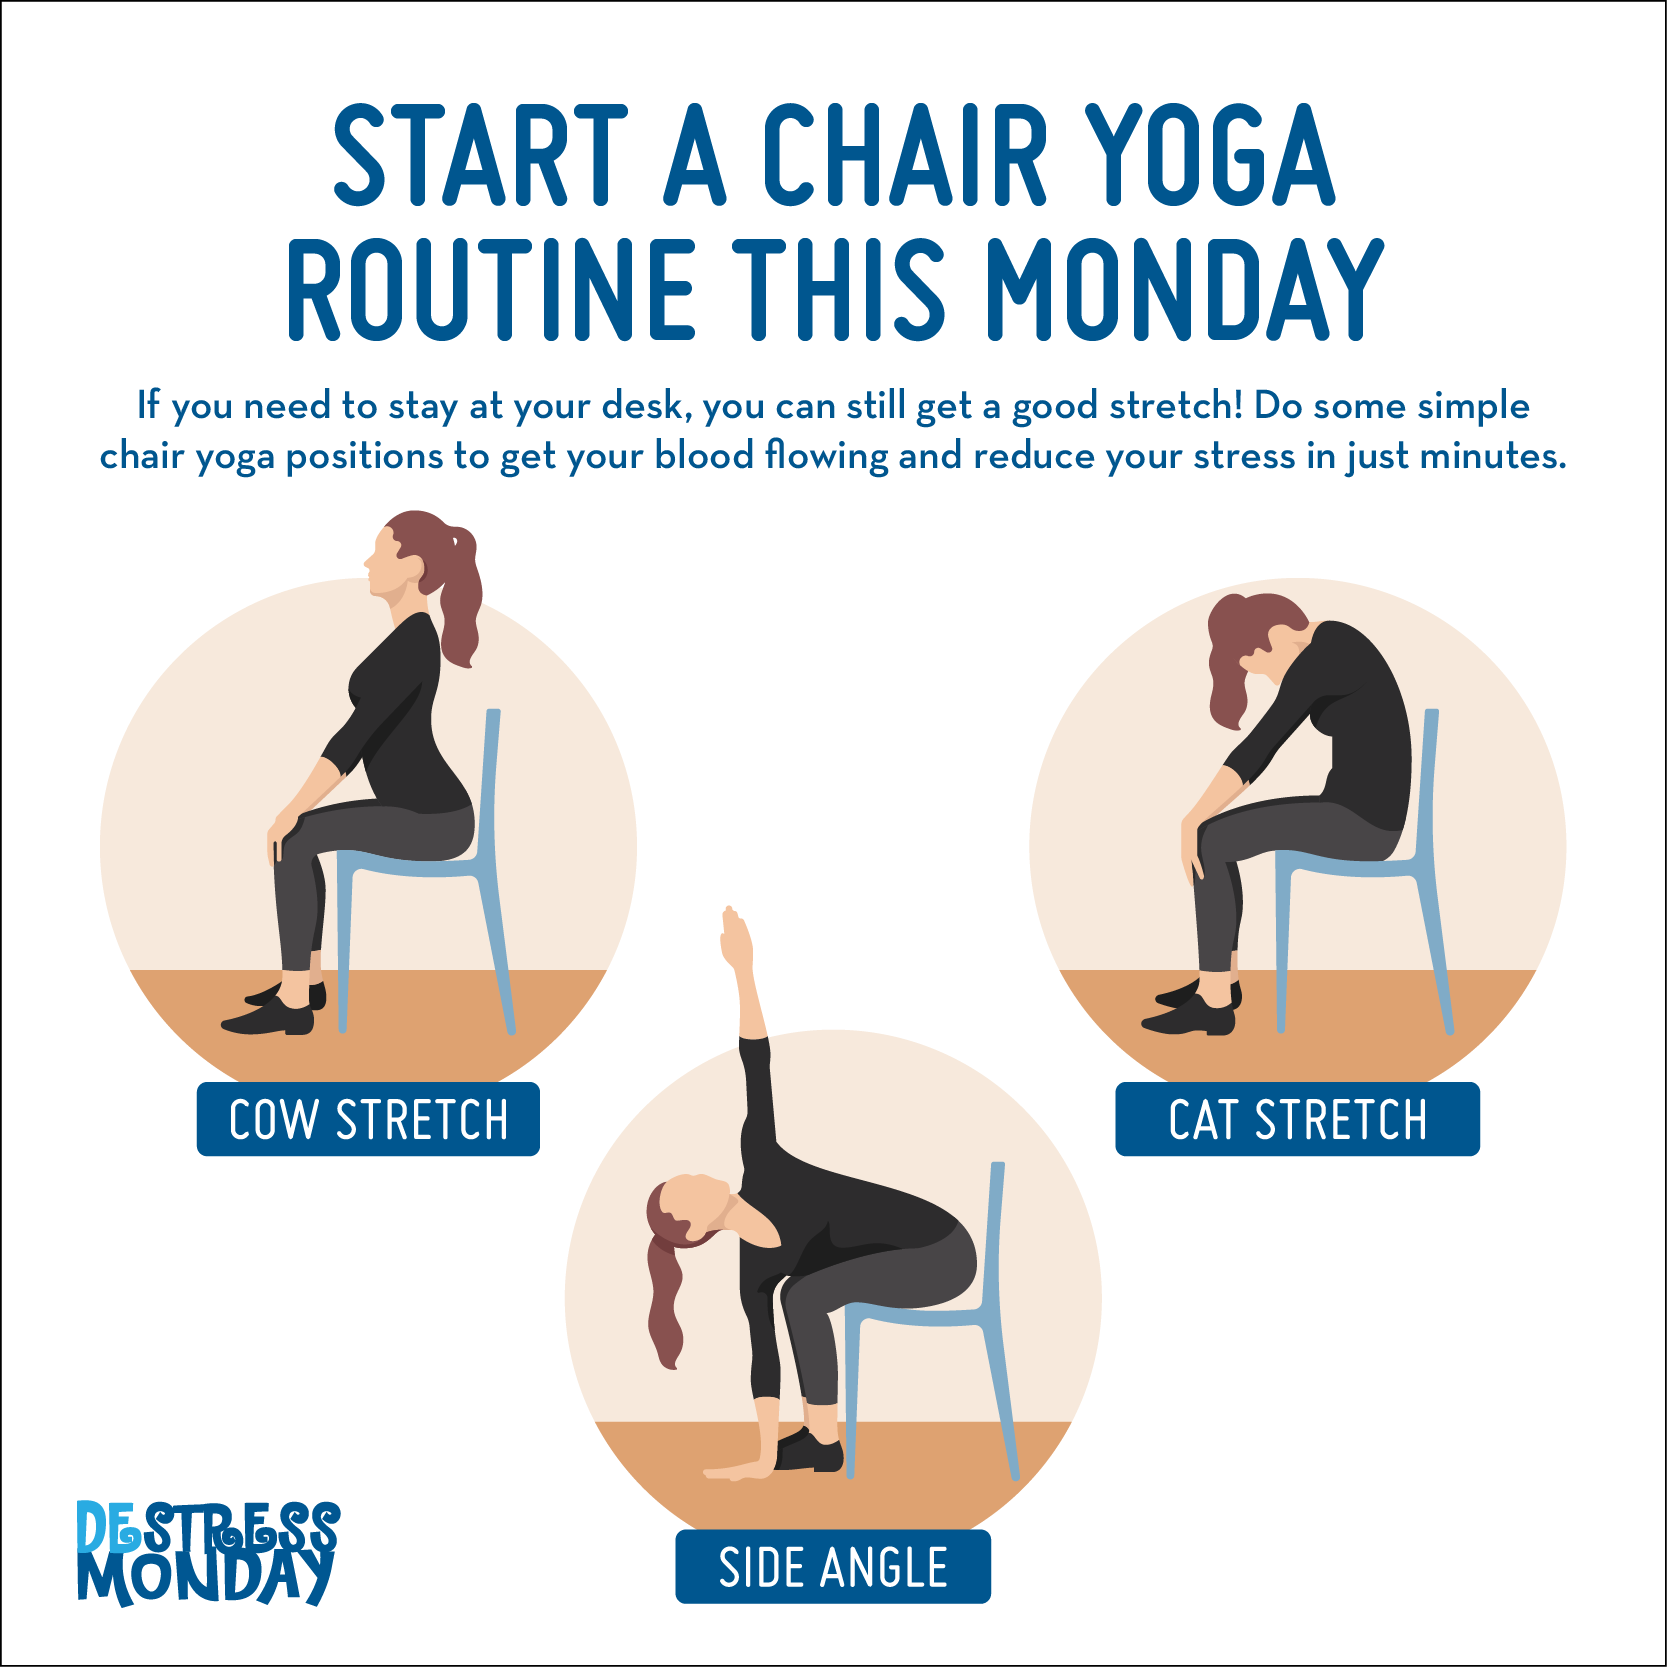 This Monday, DeStress at Work with Easy Chair Yoga Moves